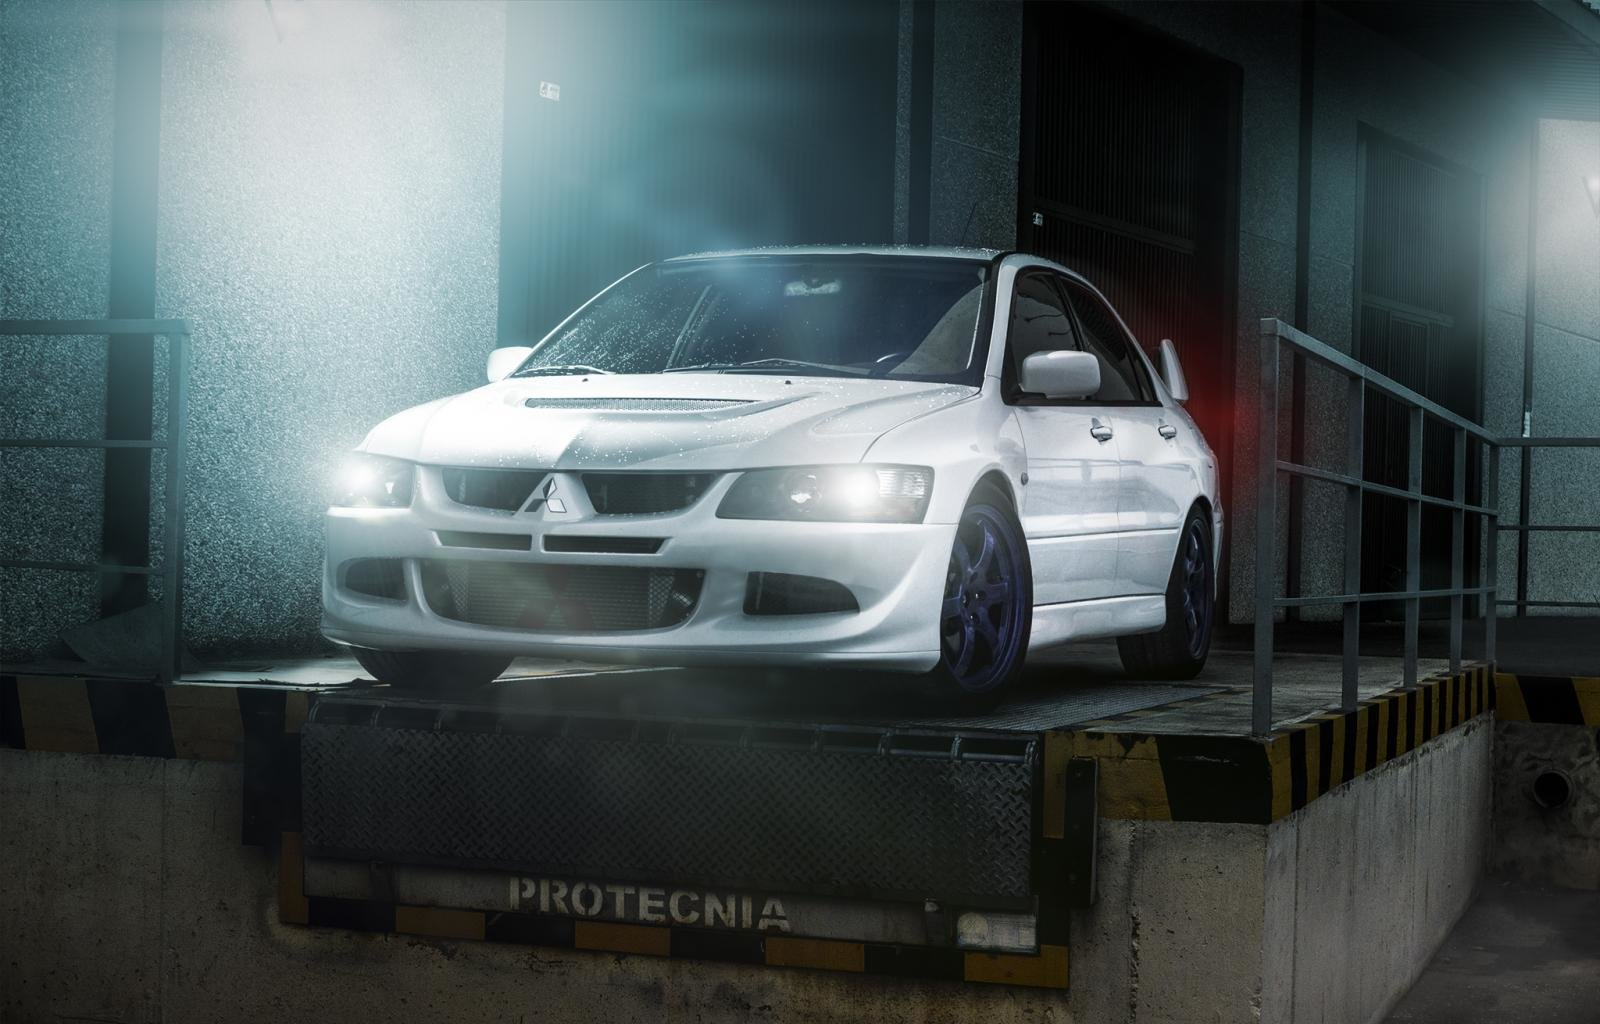 Best Mitsubishi Lancer Evolution 8 (VIII) wallpaper ID:340269 for High Resolution hd 1600x1024 PC